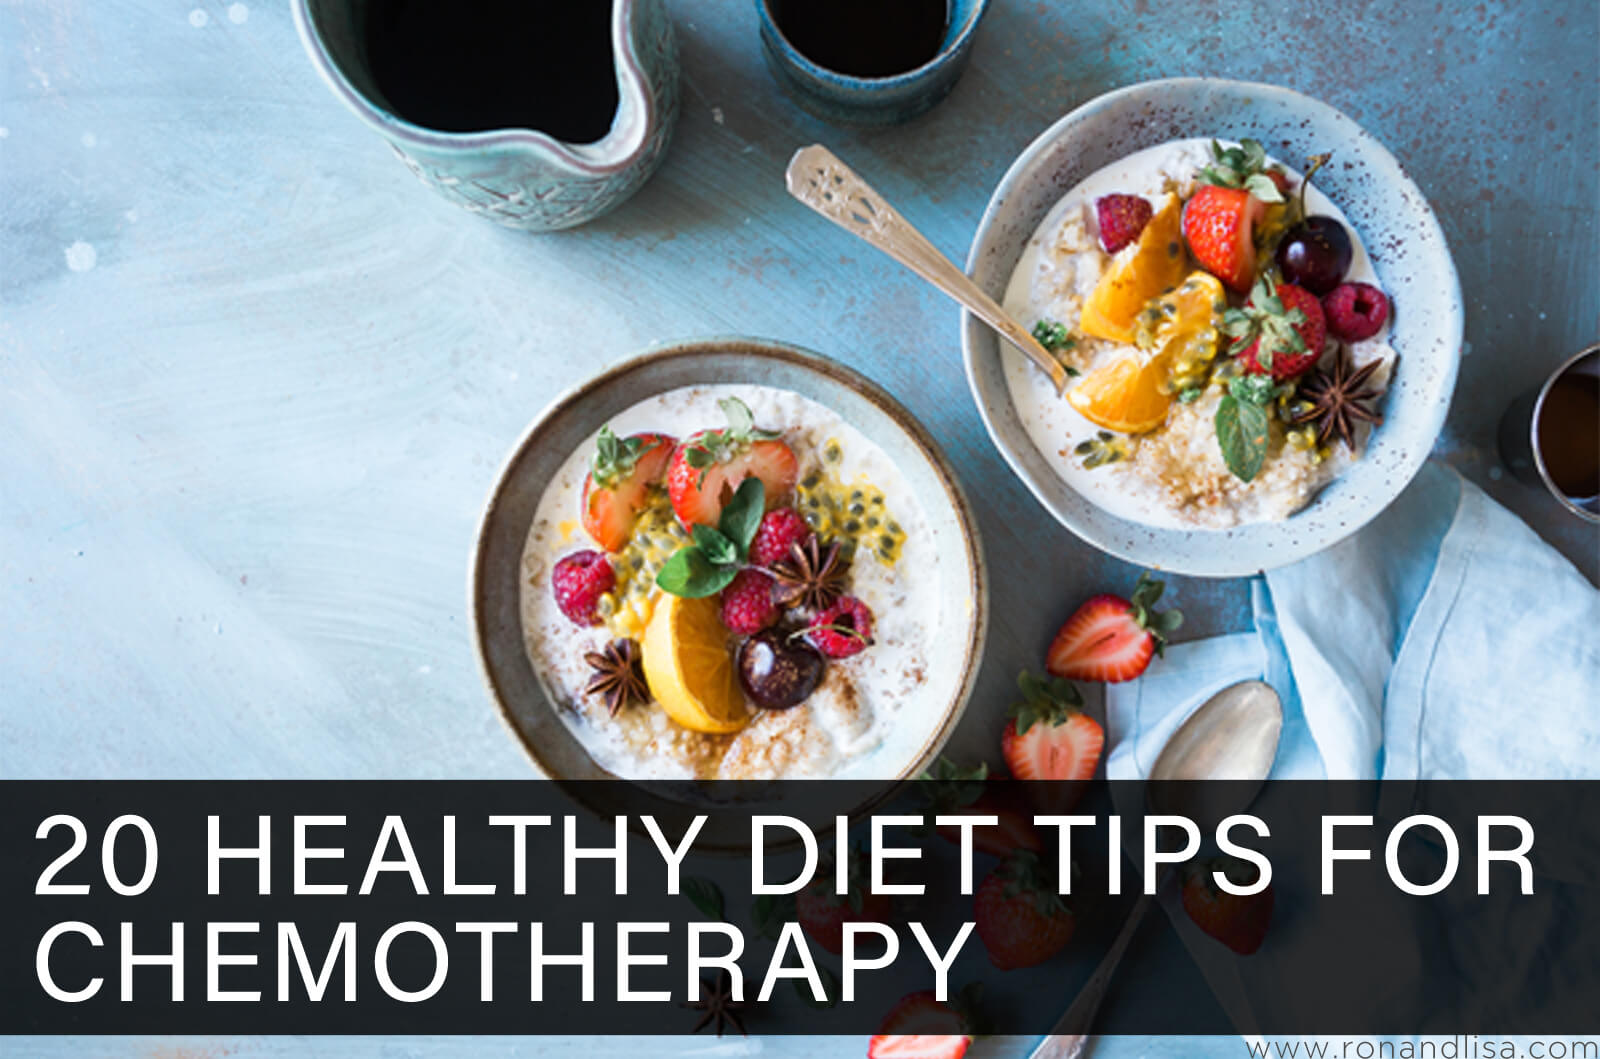 20 Healthy Diet Tips for Chemotherapy